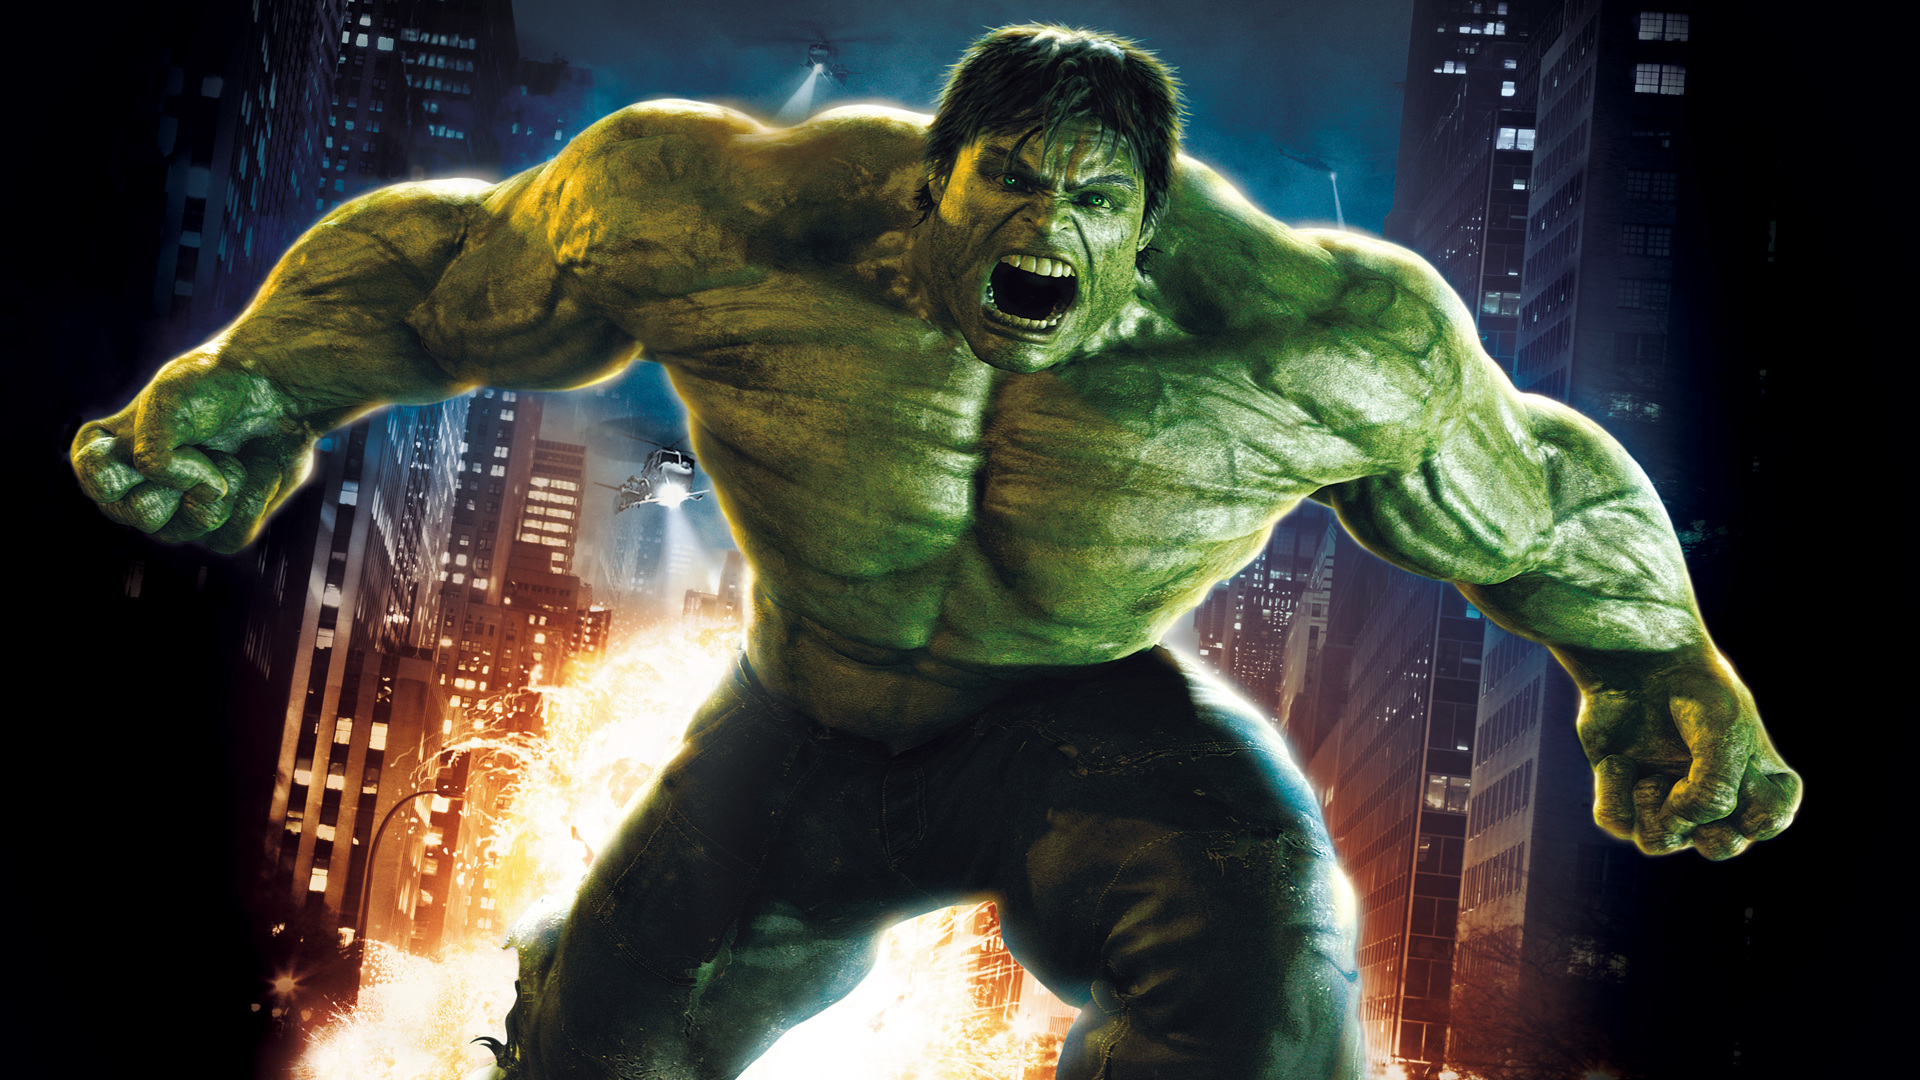 Hulk Standalone Movie Rights Finally Clarified After Months Of Confusion